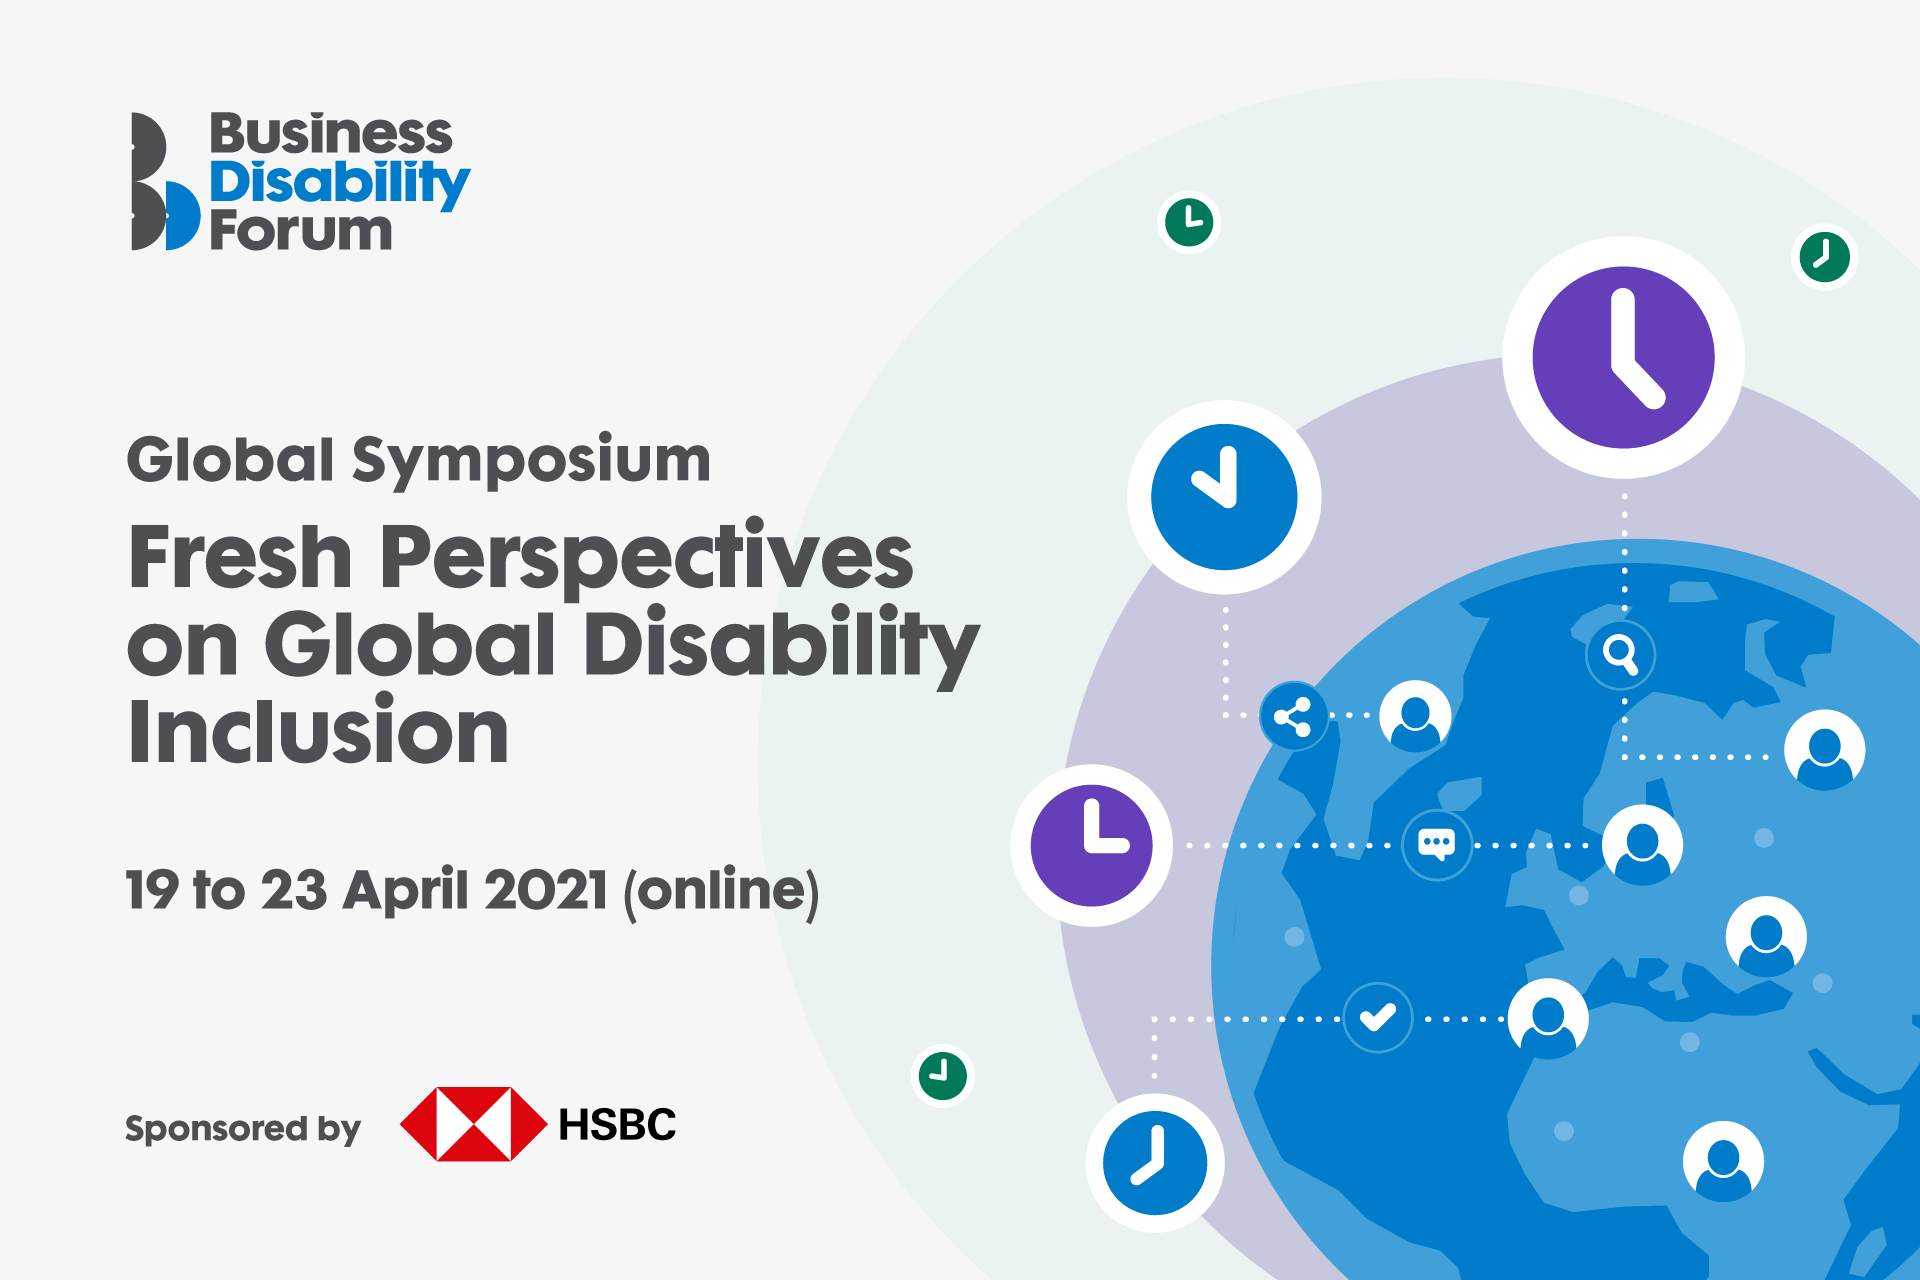 Fresh Perspectives on Global Disability Inclusion